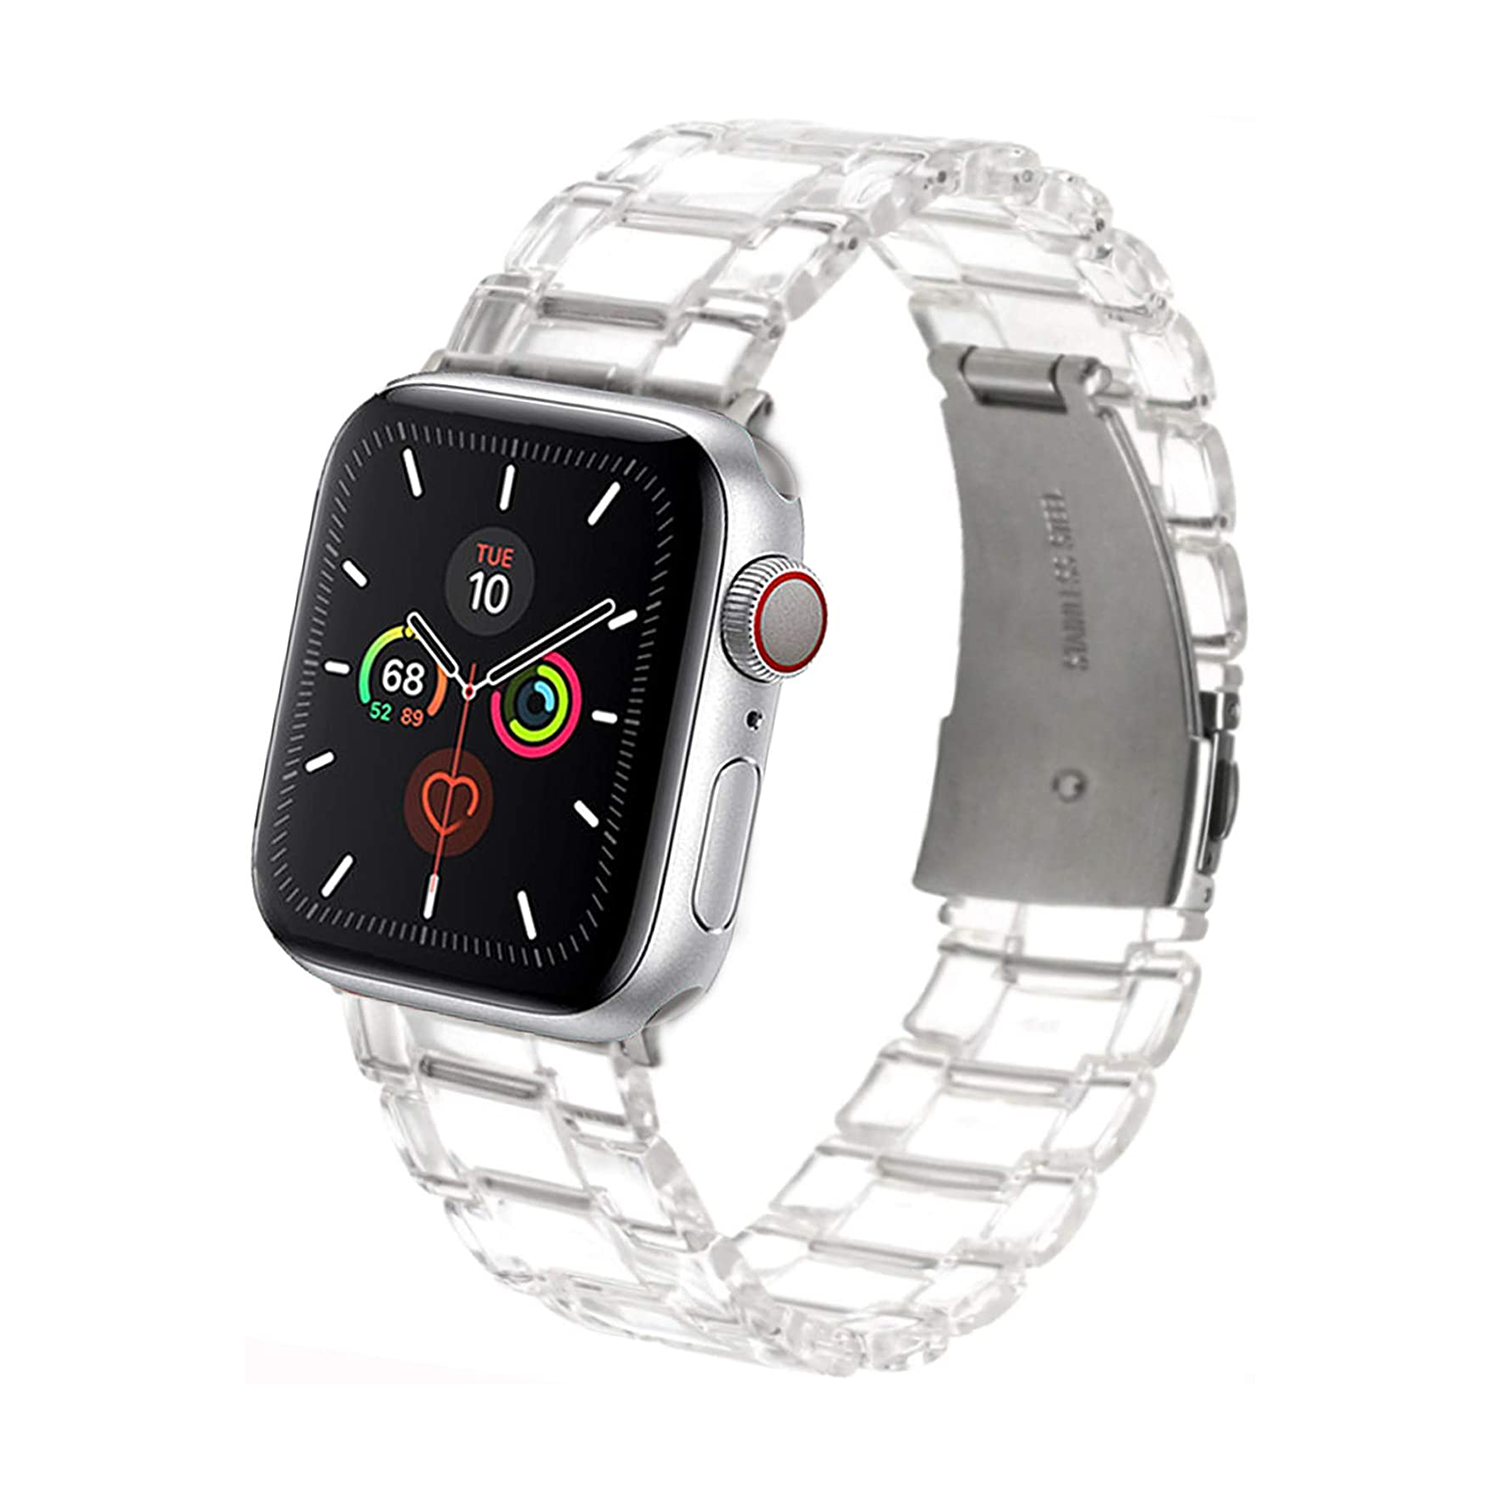 Transparent Band Bracelet Stainless Steel Buckle Band Strap for Apple Watch 42mm / 44mm